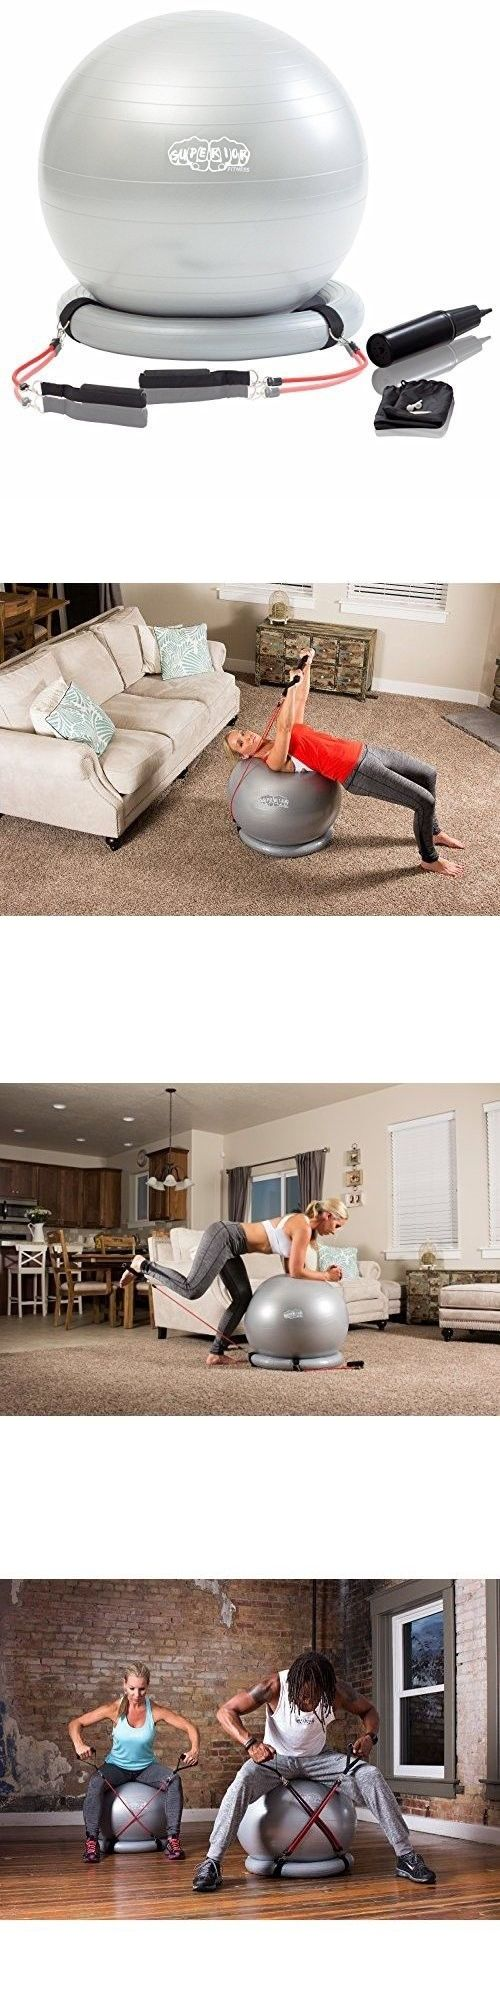 Exercise Balls 31390: Fitness Exercise Stability Ball Workout Set Resistance Bands Yoga Core Balance -> BUY IT NOW ONLY: $52.2 on eBay!